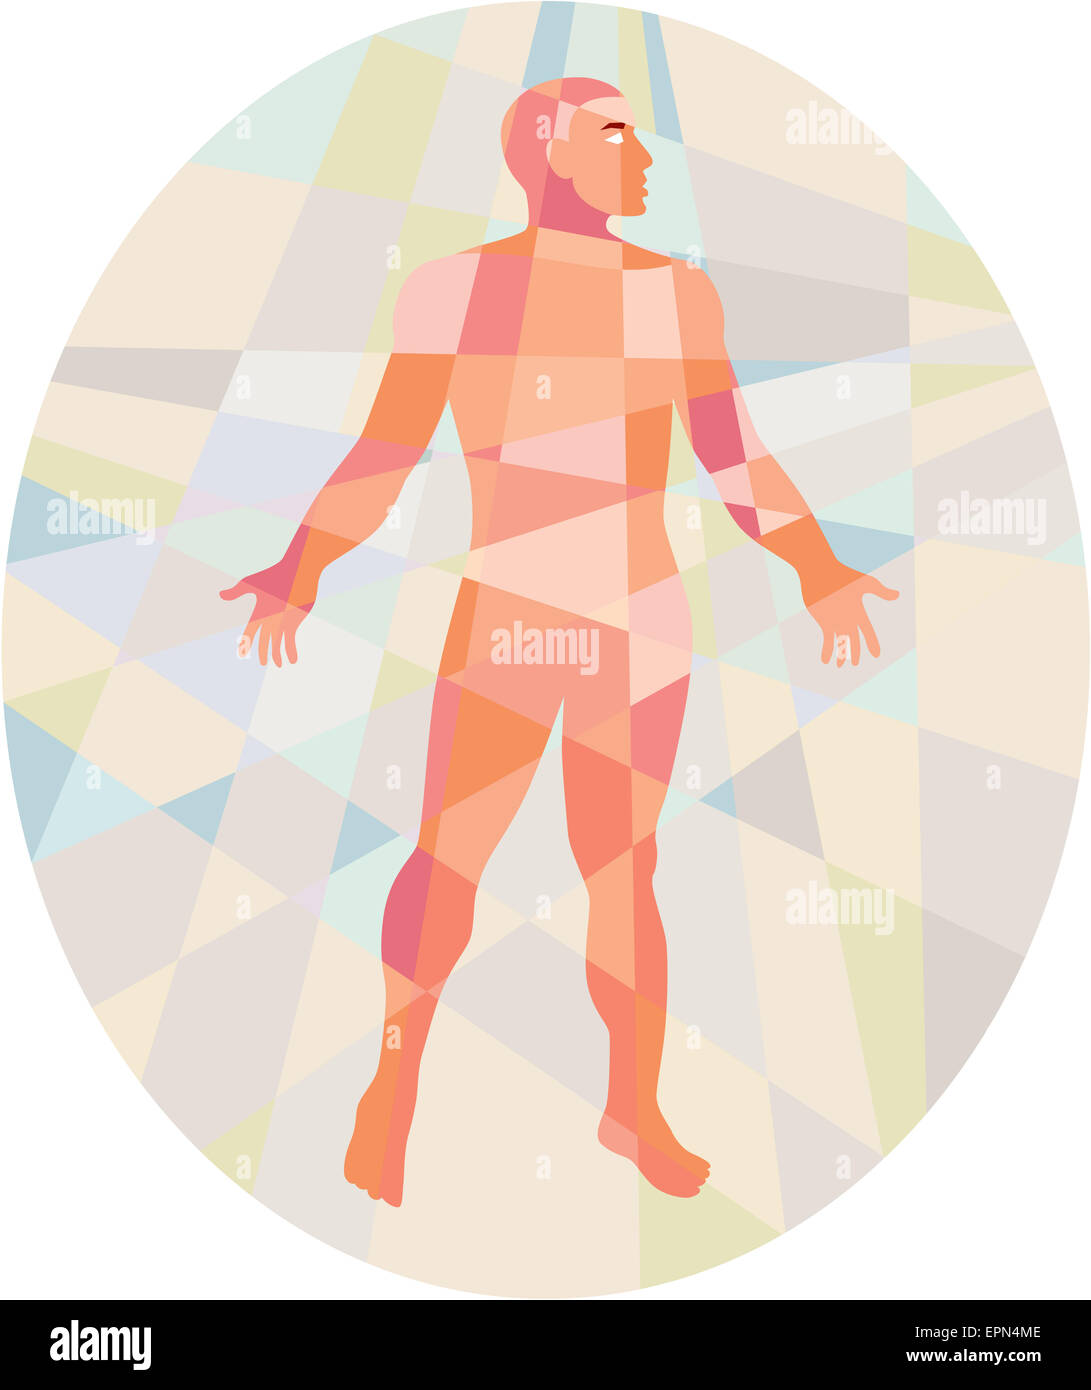 Low polygon style illustration of a gross anatomy male with hands on the side viewed from front set inside oval. - Stock Image